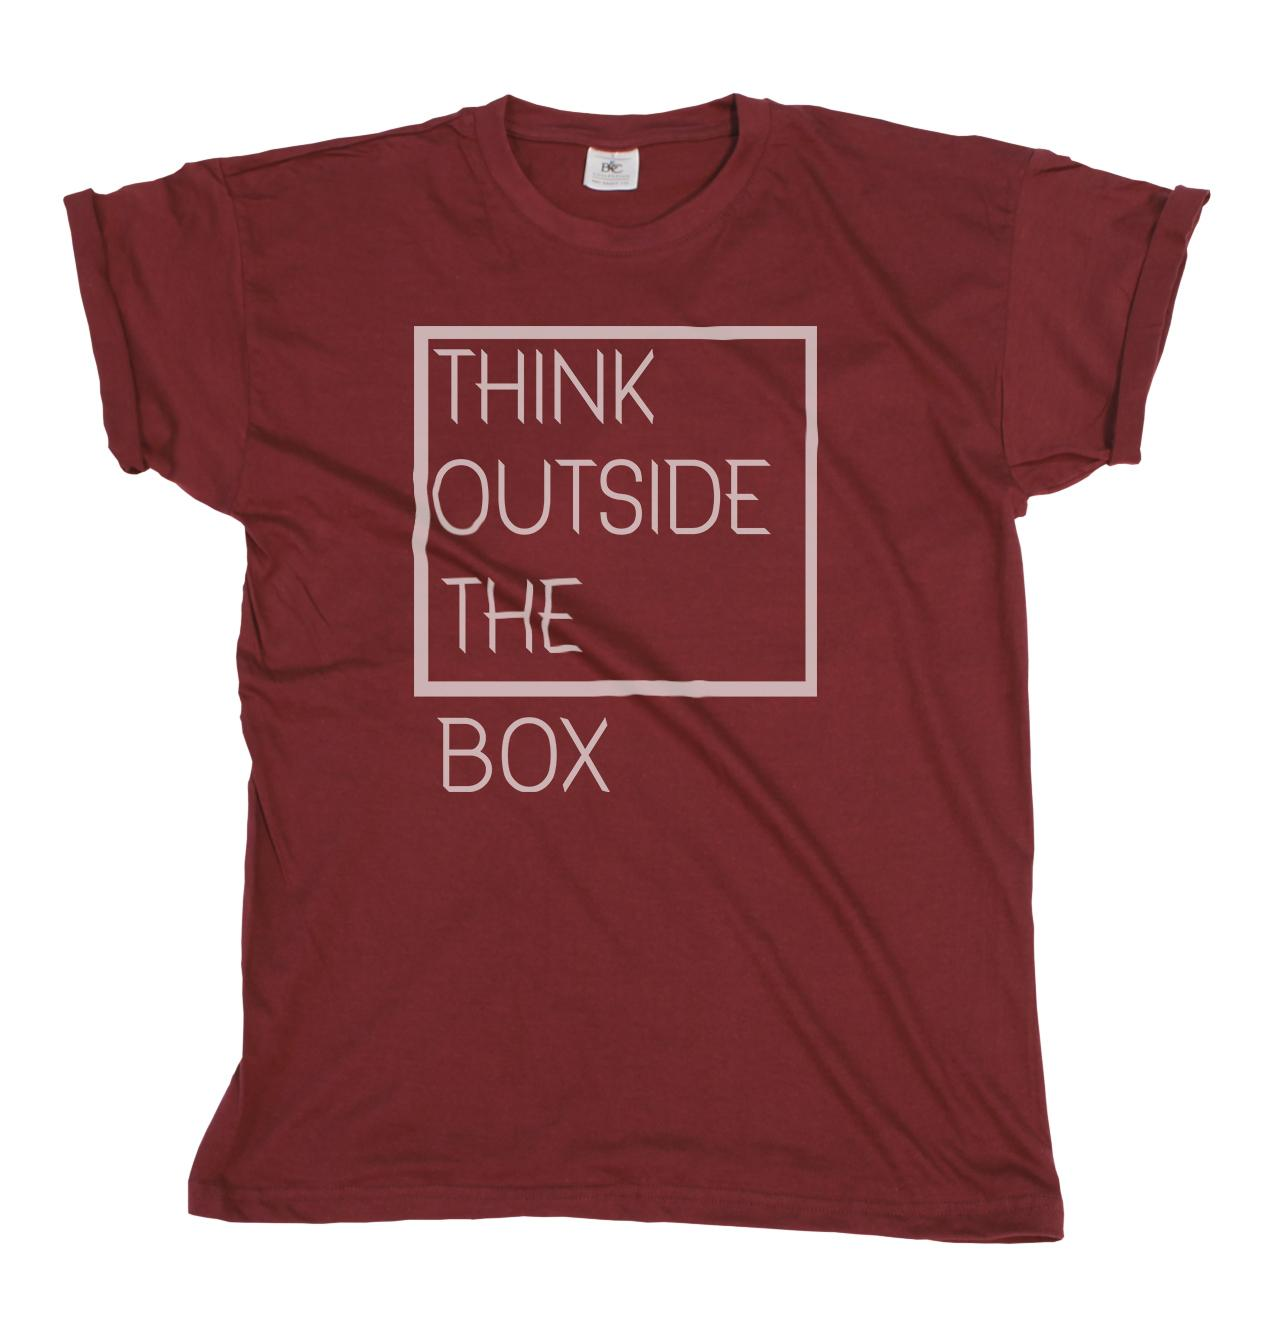 4a727244e Think Outside The Box Mens/Ladies T Shirt Christmas Gift The Coolest T  Shirts T Shirt Shirt Designs From Tshirtemperor, $11.01| DHgate.Com